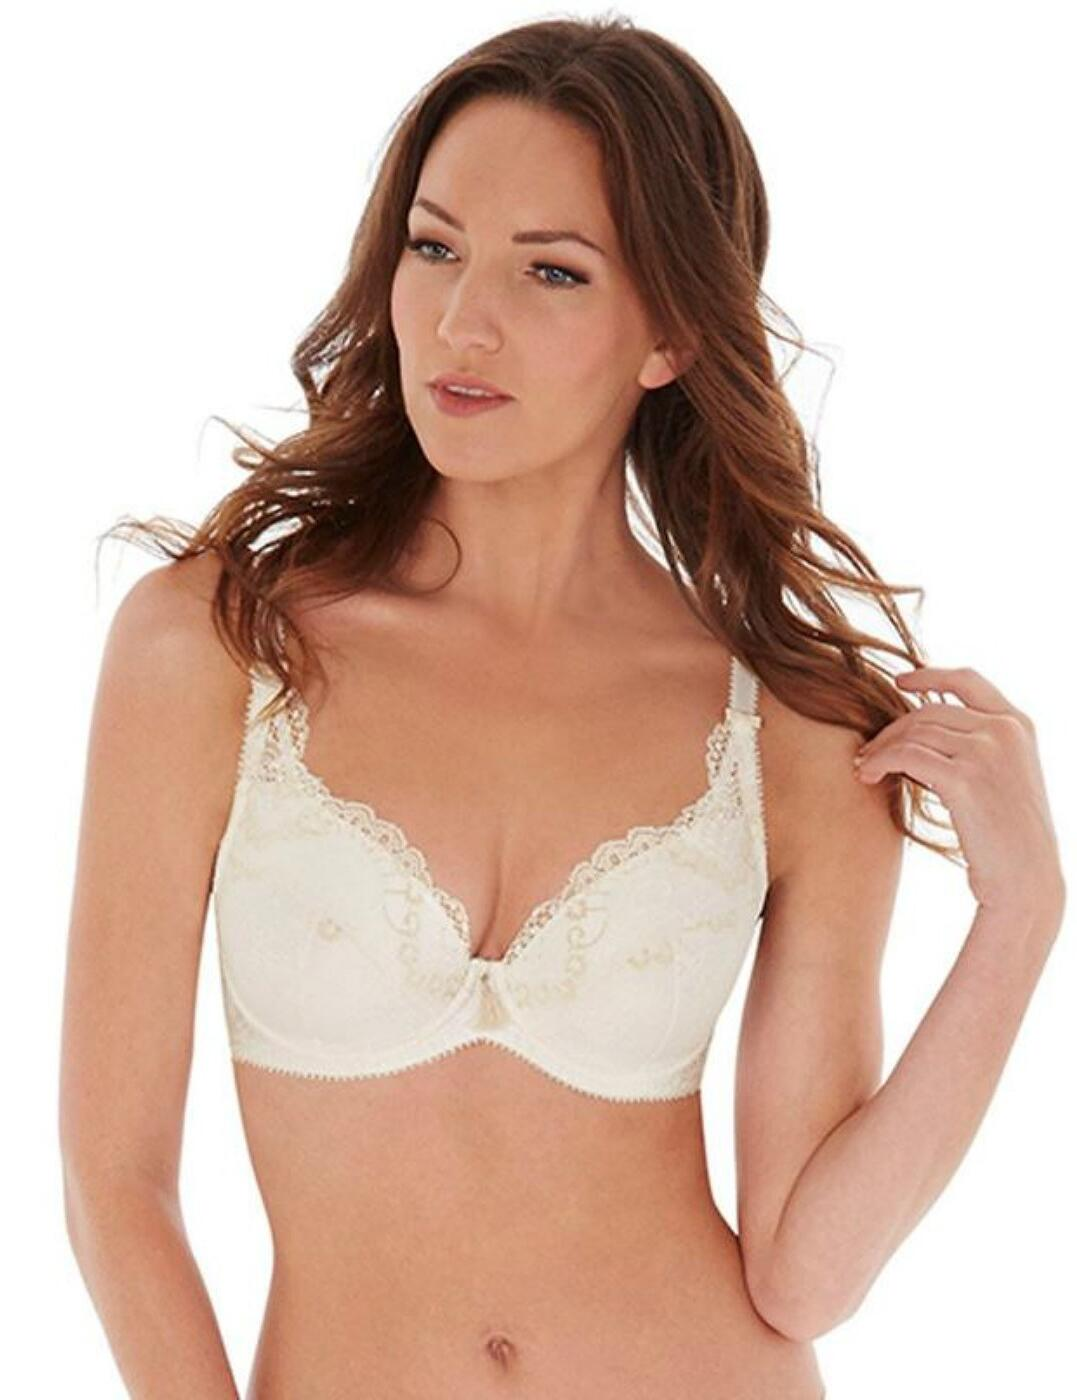 1551020 Charnos Bailey Padded Plunge Bra - 1551020 Ivory